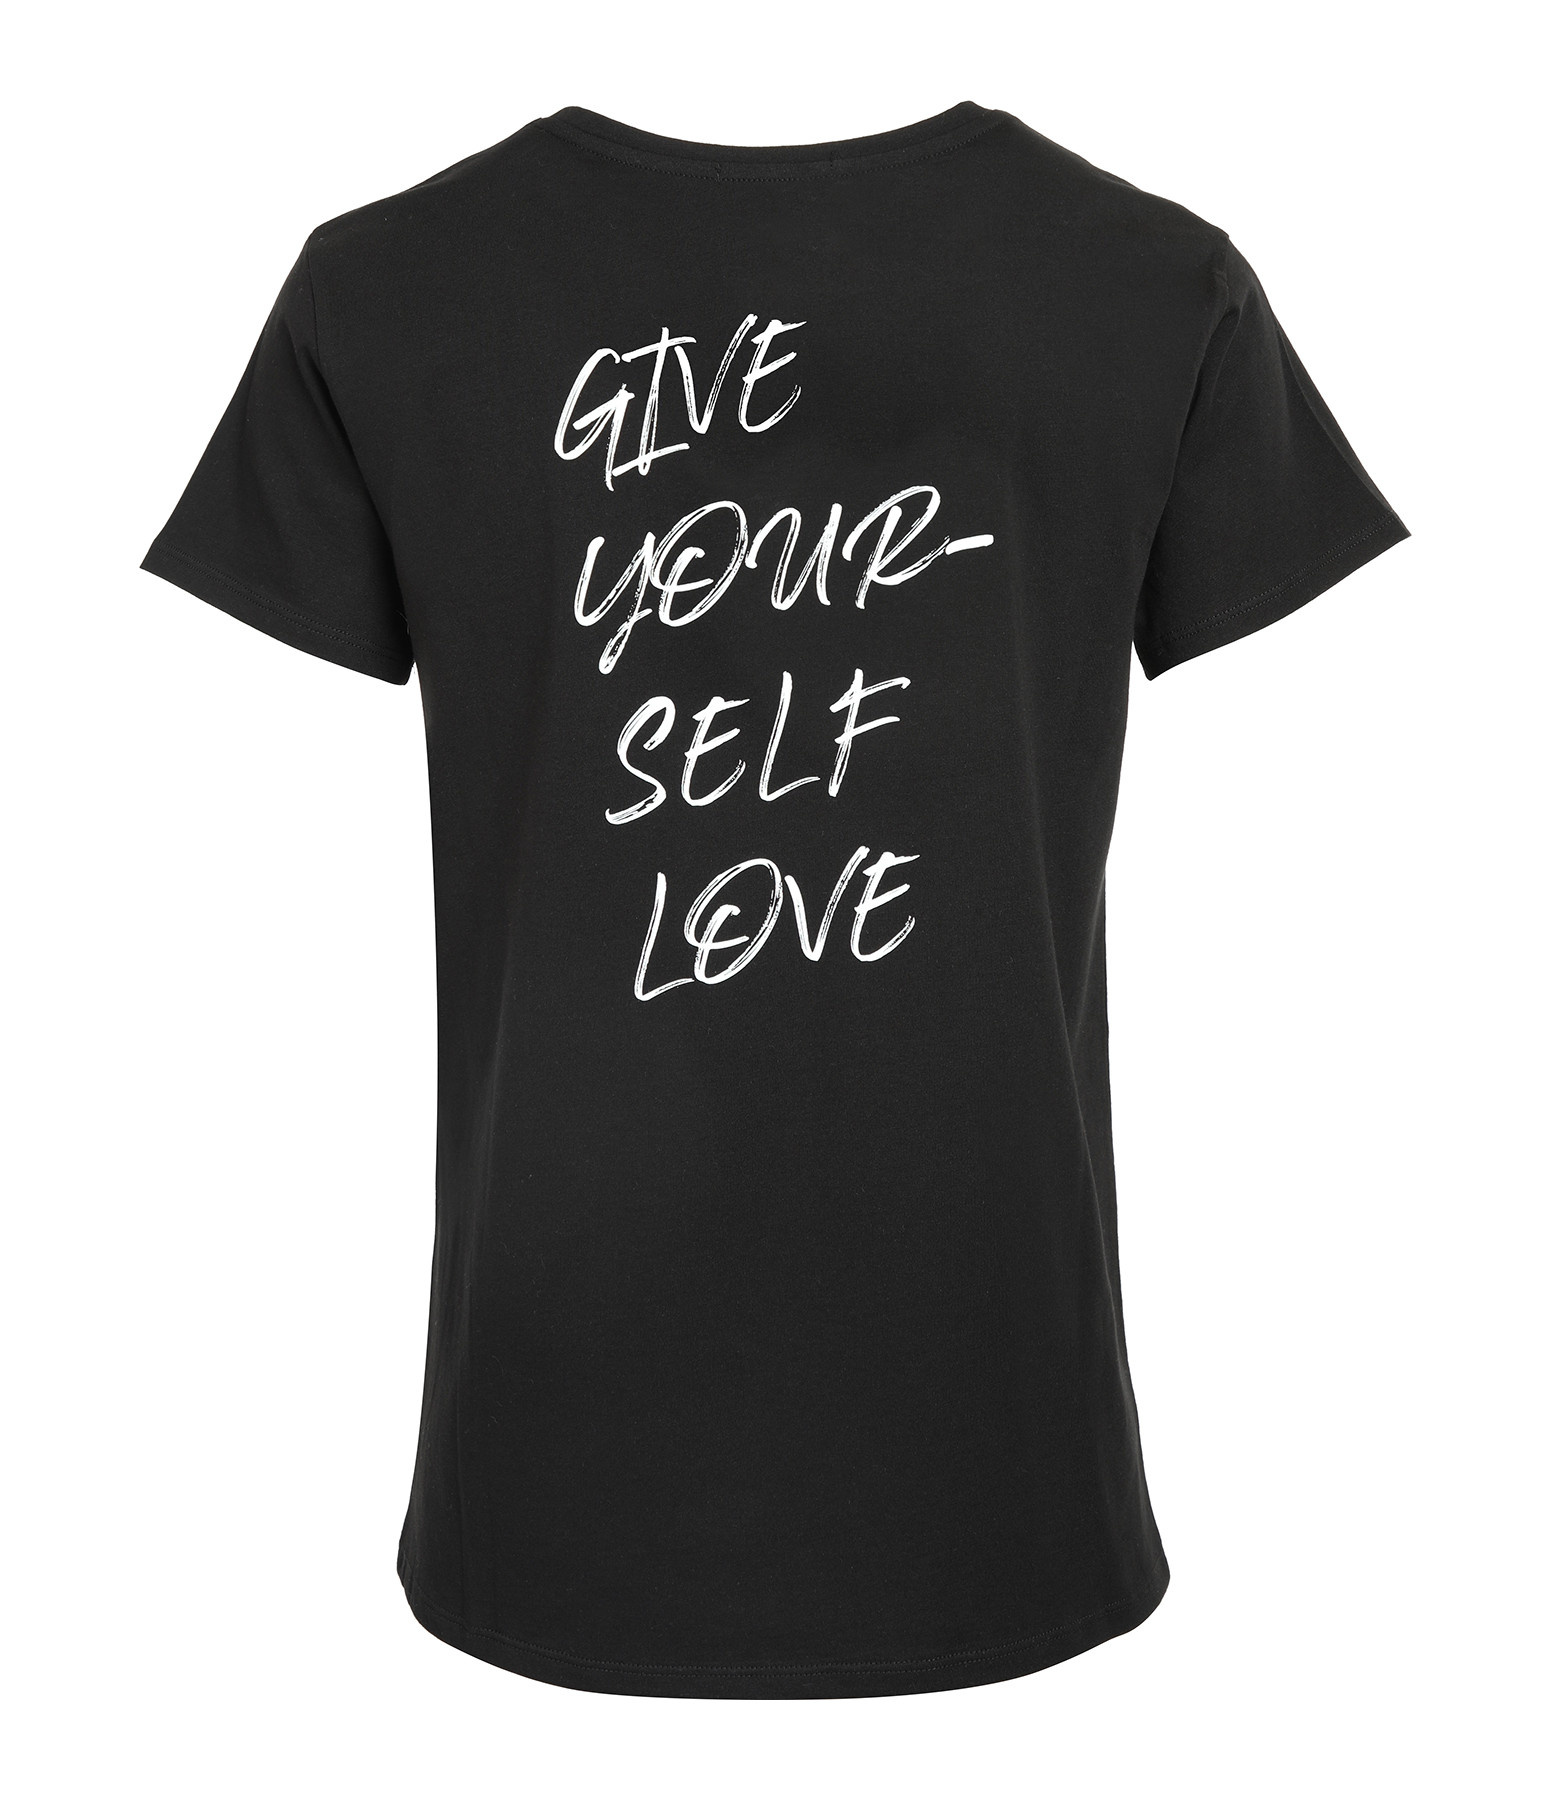 JEANNE VOULAND - Tee-shirt Ery Give Yourself Love Coton Noir